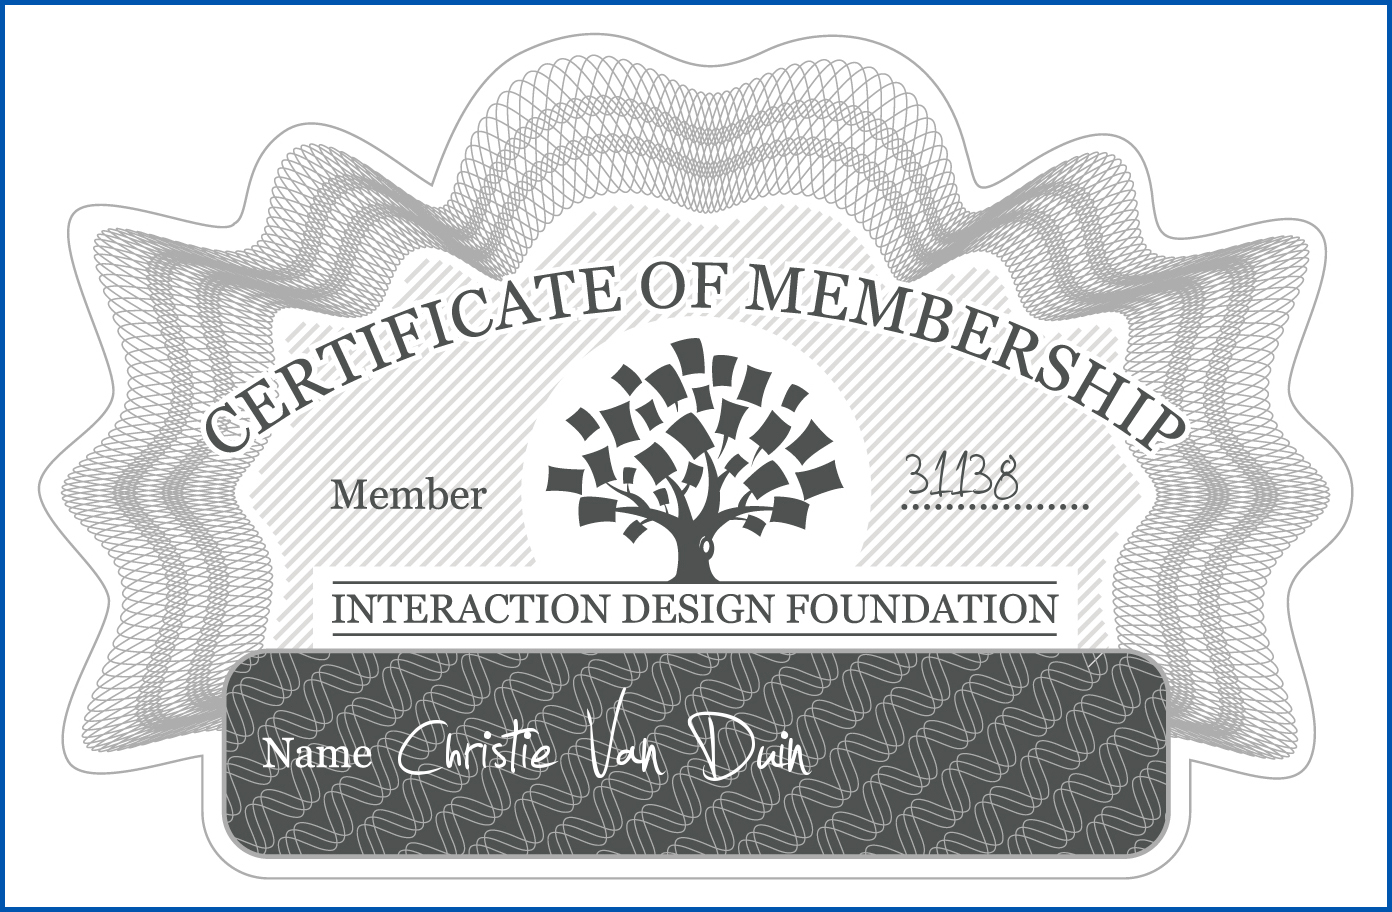 Interaction Design Foundation Member Certification